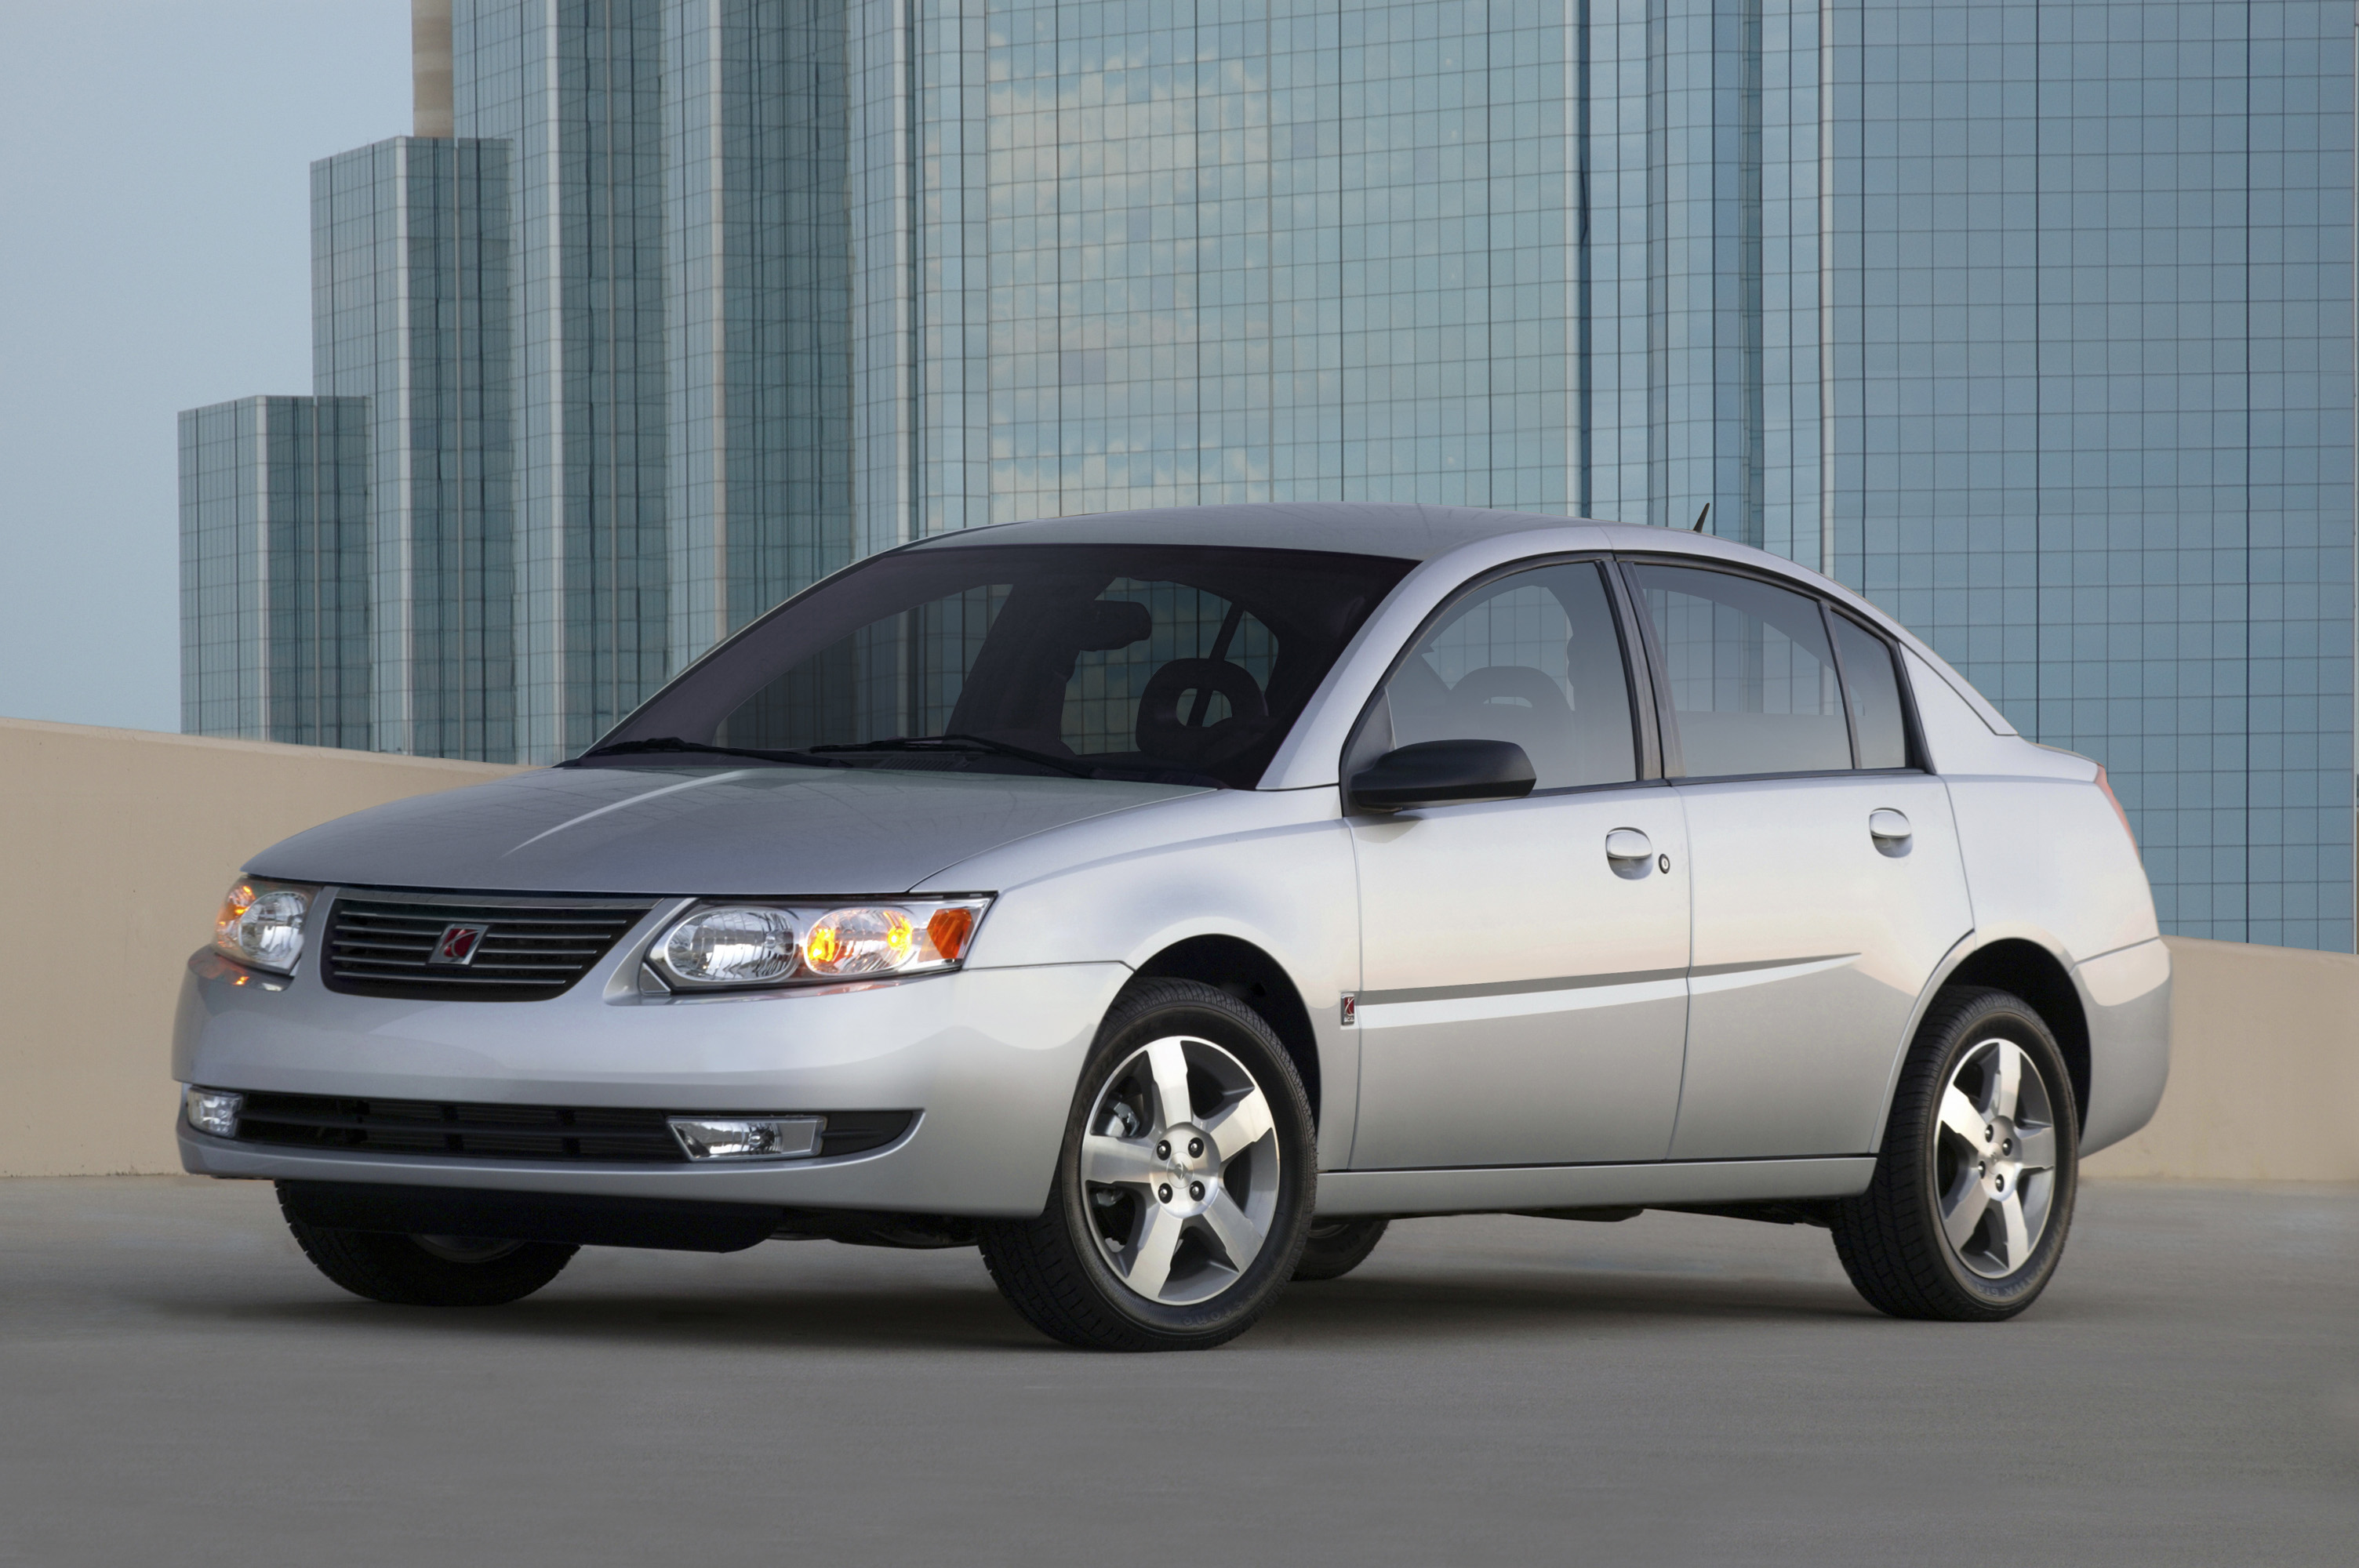 2007 saturn ion review top speed. Black Bedroom Furniture Sets. Home Design Ideas